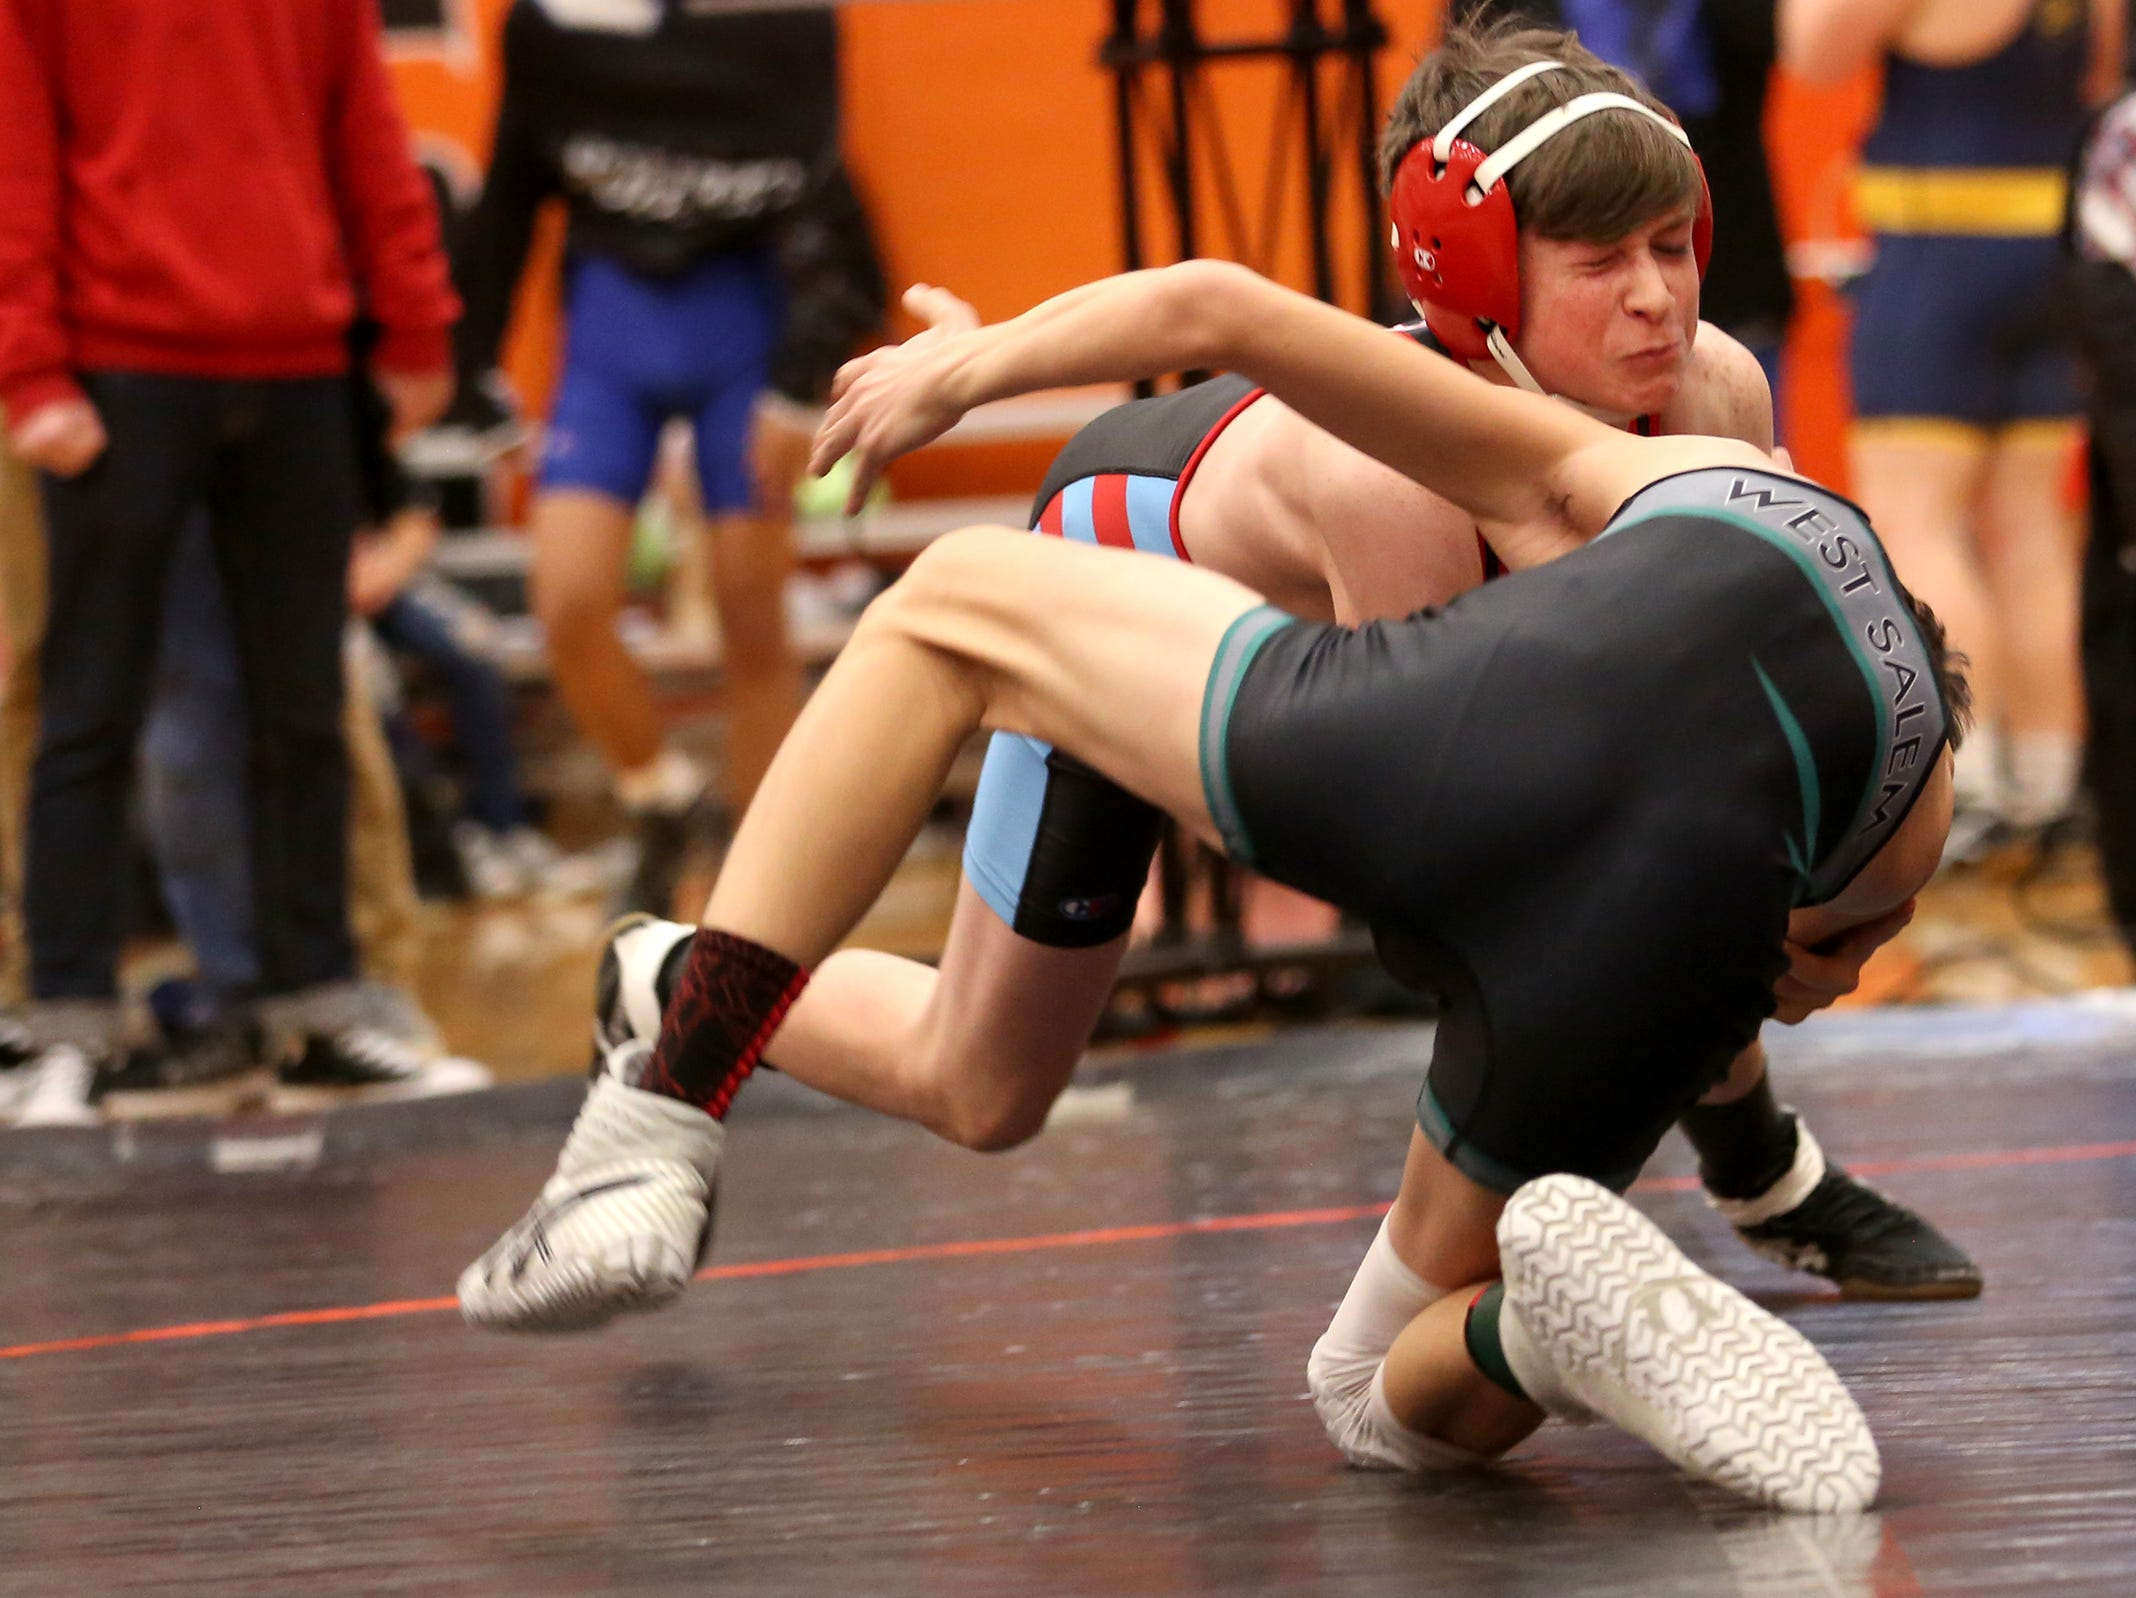 South Salem's Ethan Kline (facing) struggles against West Salem's Lance McClung in the 113 pound weight class during the Mountain Valley Conference district wrestling tournament at Sprague High School in Salem on Friday, Feb. 15, 2019.